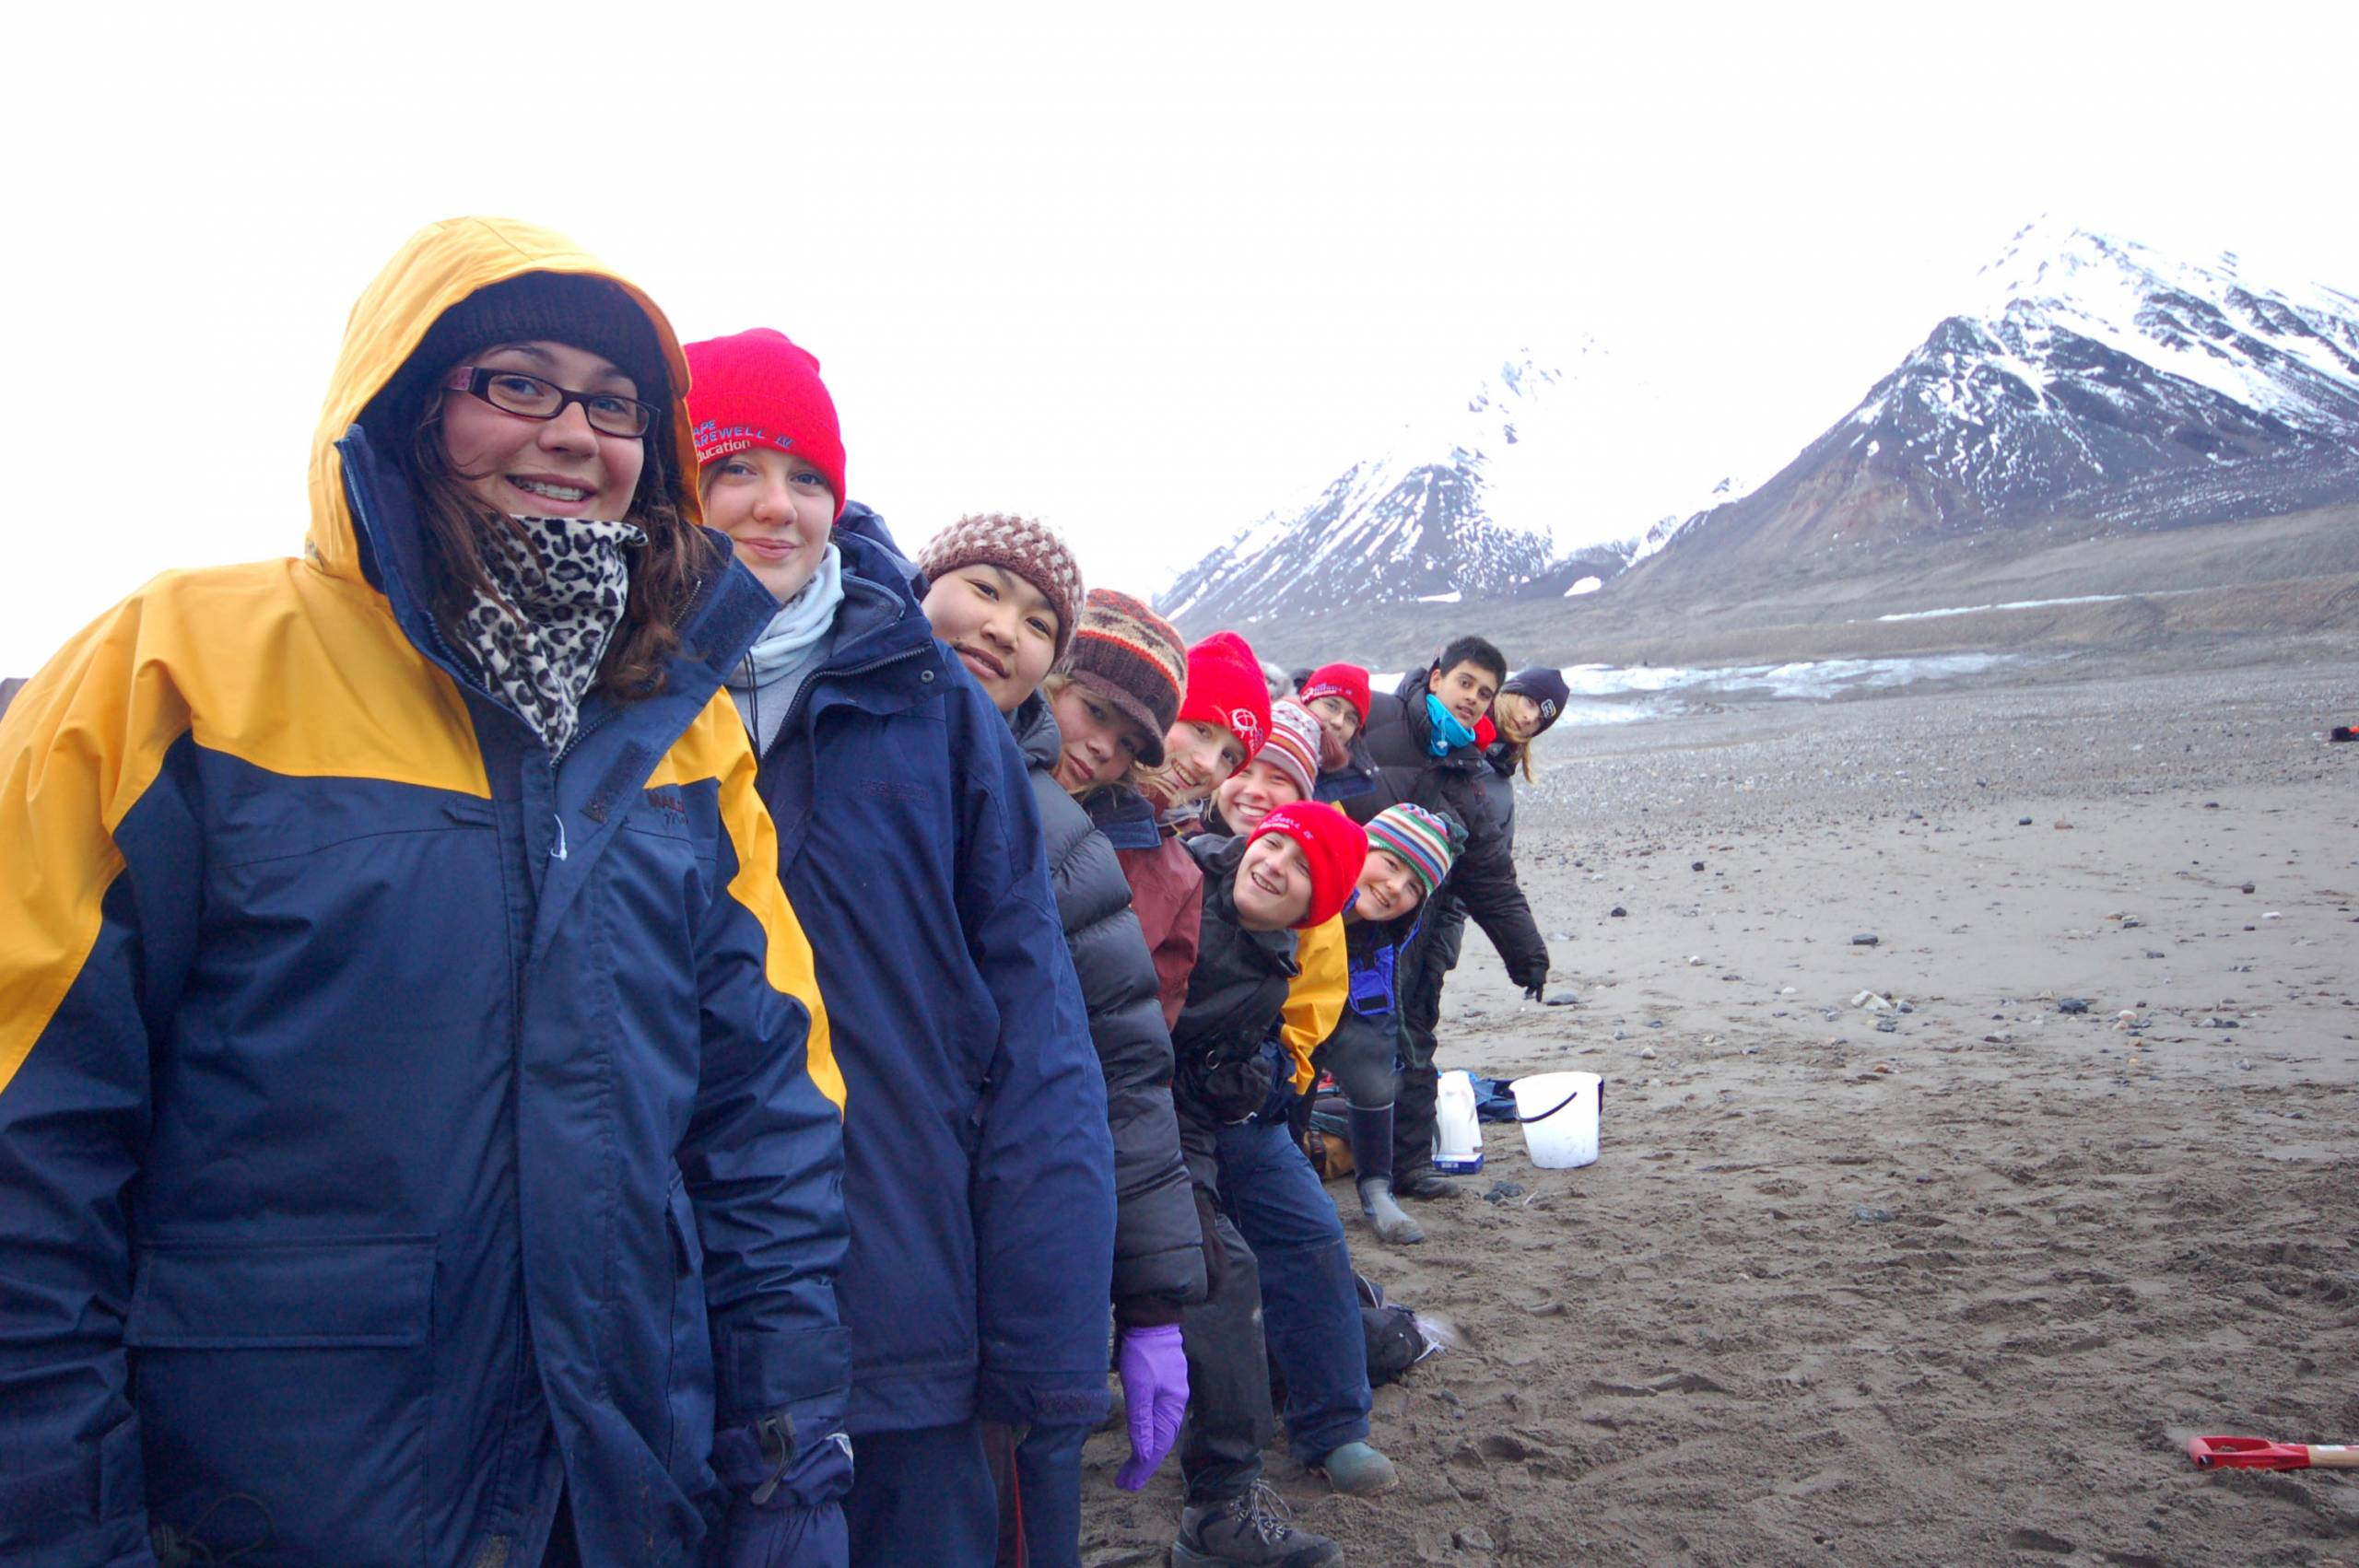 group of young people in Arctic landscape